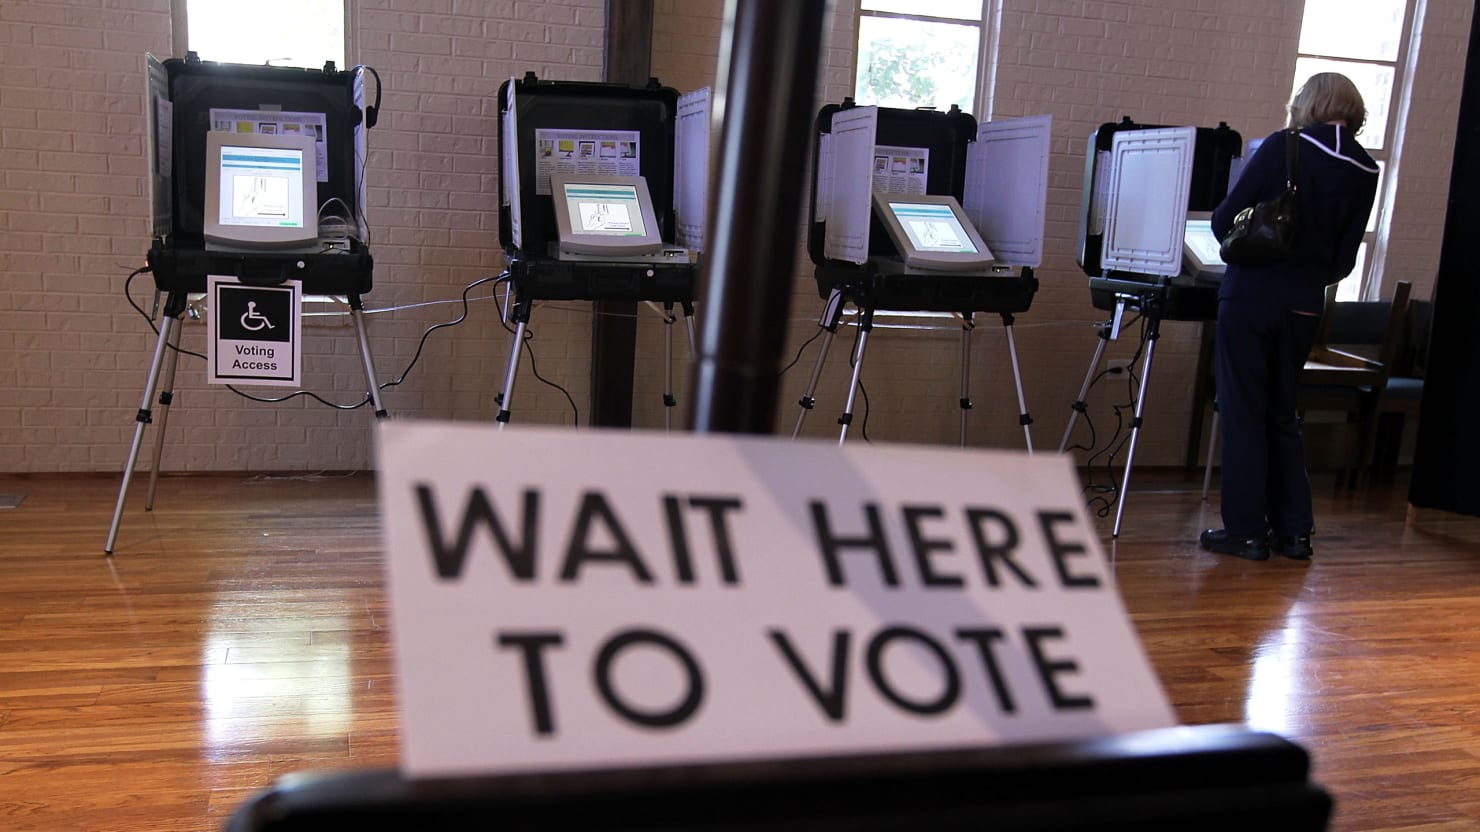 Obama Electoral Commission Omission: Our Voting System Needs Real Reform